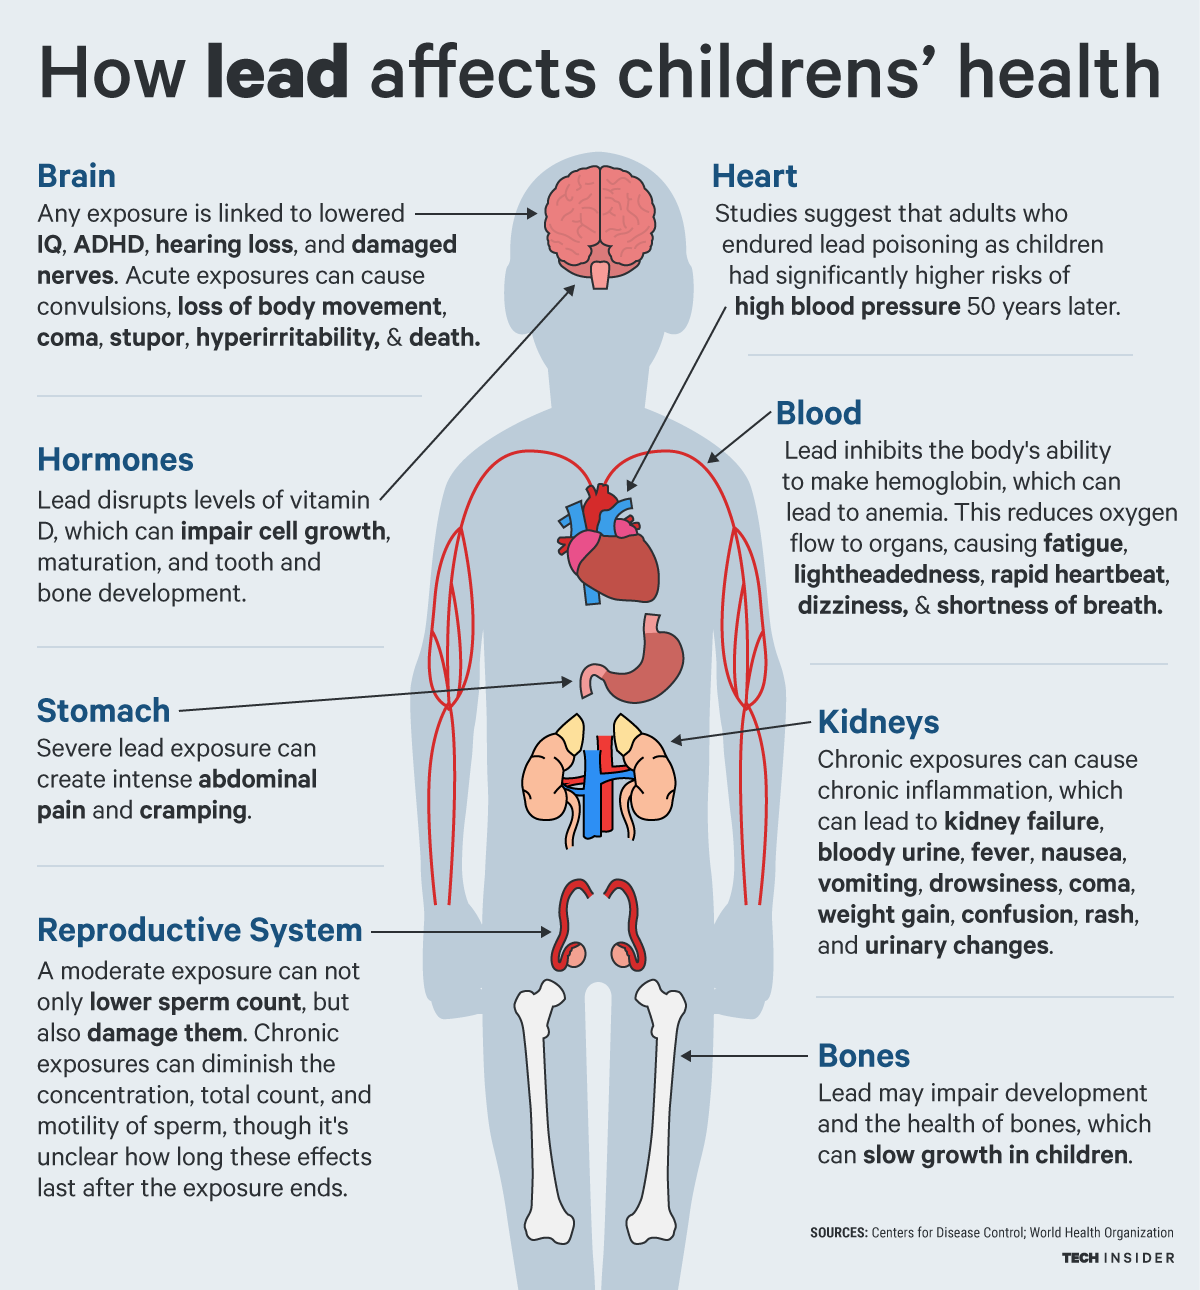 How lead affects childrens' health.